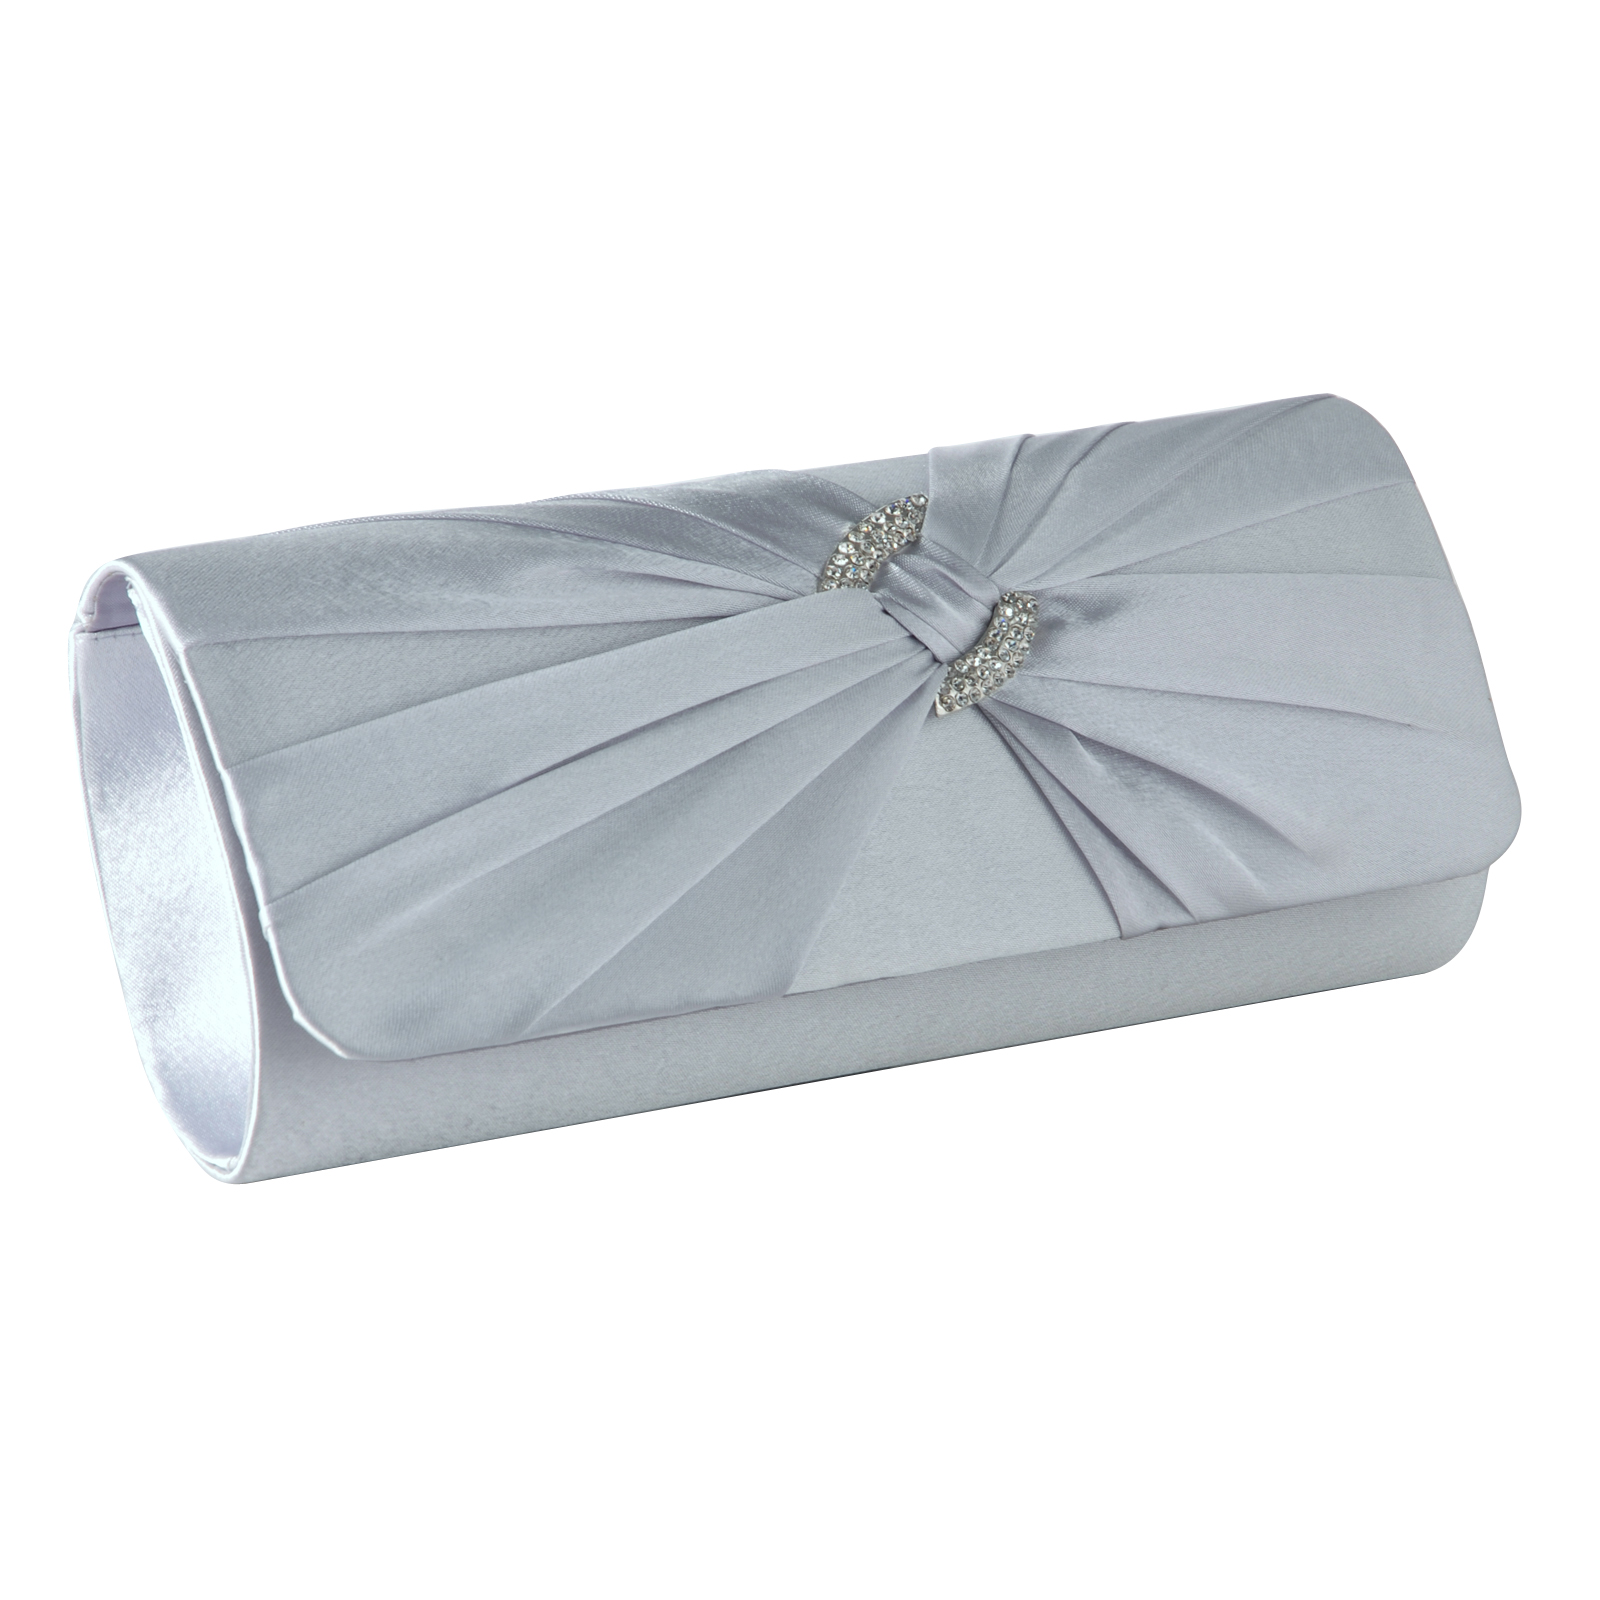 Women Satin Diamante Pleated Bridal Clutch Bag Ladies Evening Bag Handbag | EBay